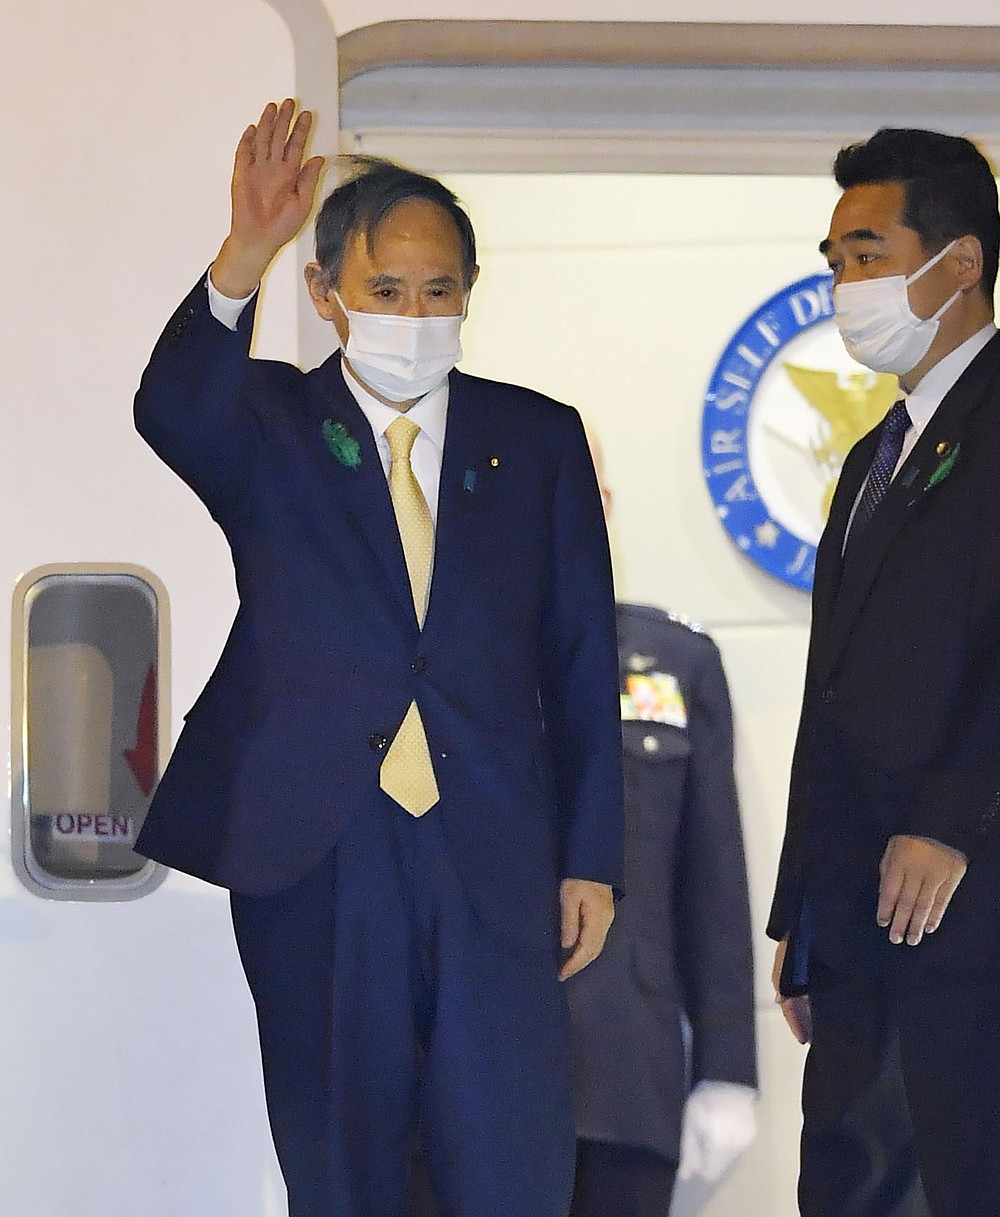 Japanese Prime Minister Yoshihide Suga waves on his departure for the U.S., at Haneda airport, in Tokyo Thursday, April 15, 2021.  Suga headed to Washington on Thursday to become a first foreign leader to have a face-to-face meeting with President Joe Biden for talks that would reaffirm the strength of their alliance and how to deal with China's growing assertiveness and challenge to democratic values. (Kyodo News via AP)